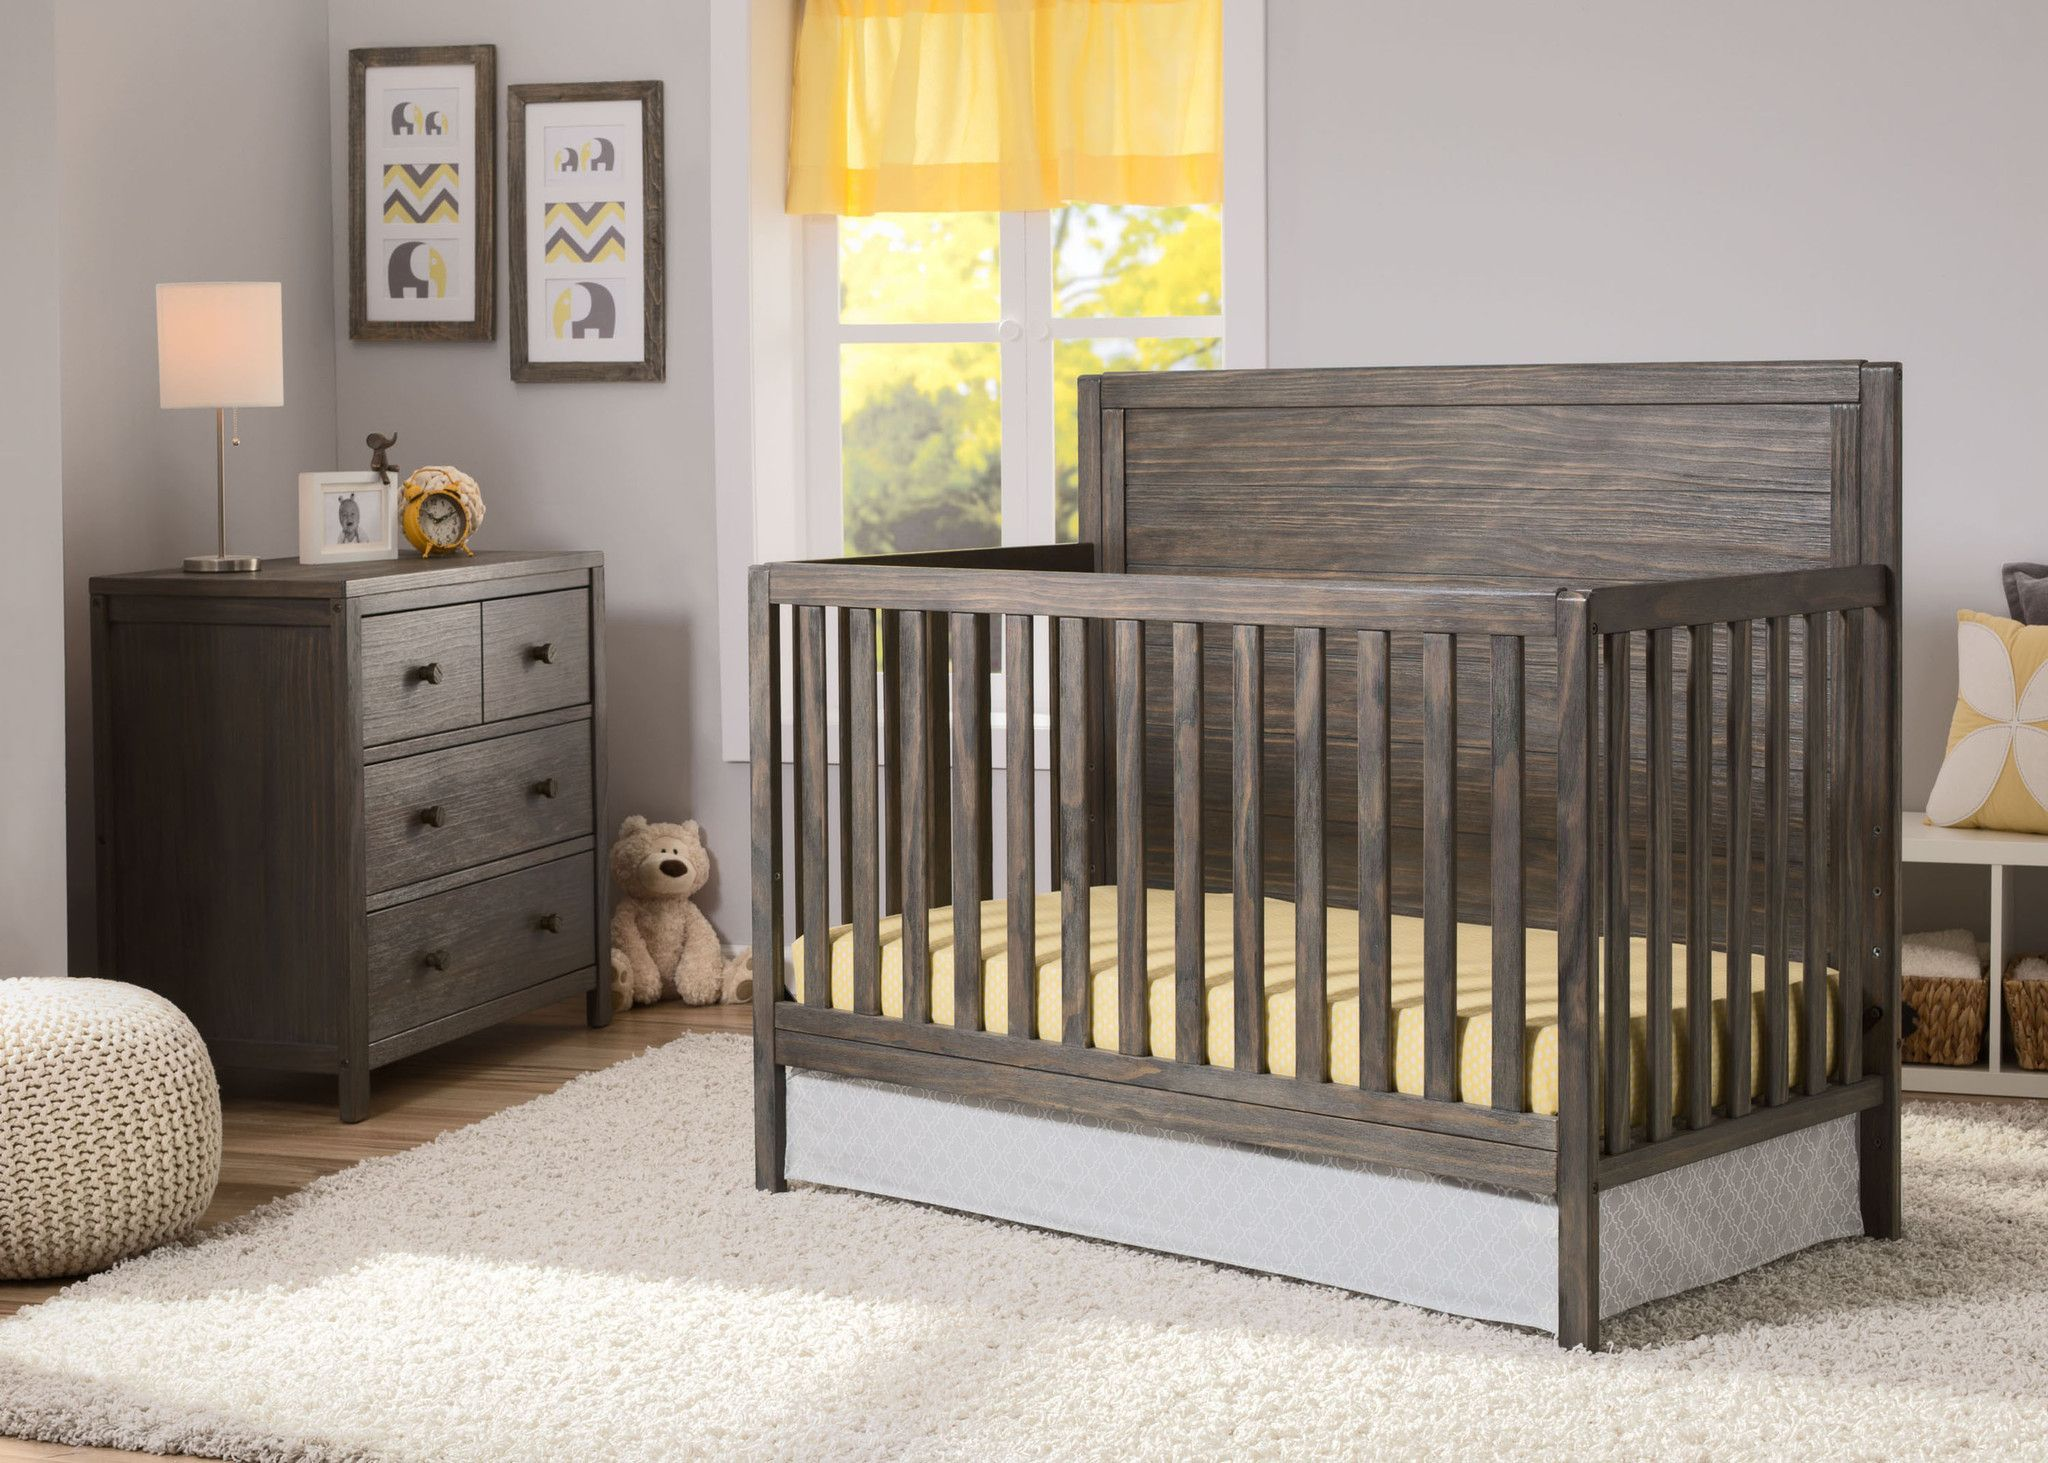 delta children rustic grey () cambridge in crib side view  - delta children rustic grey cambridge crib side view in setting